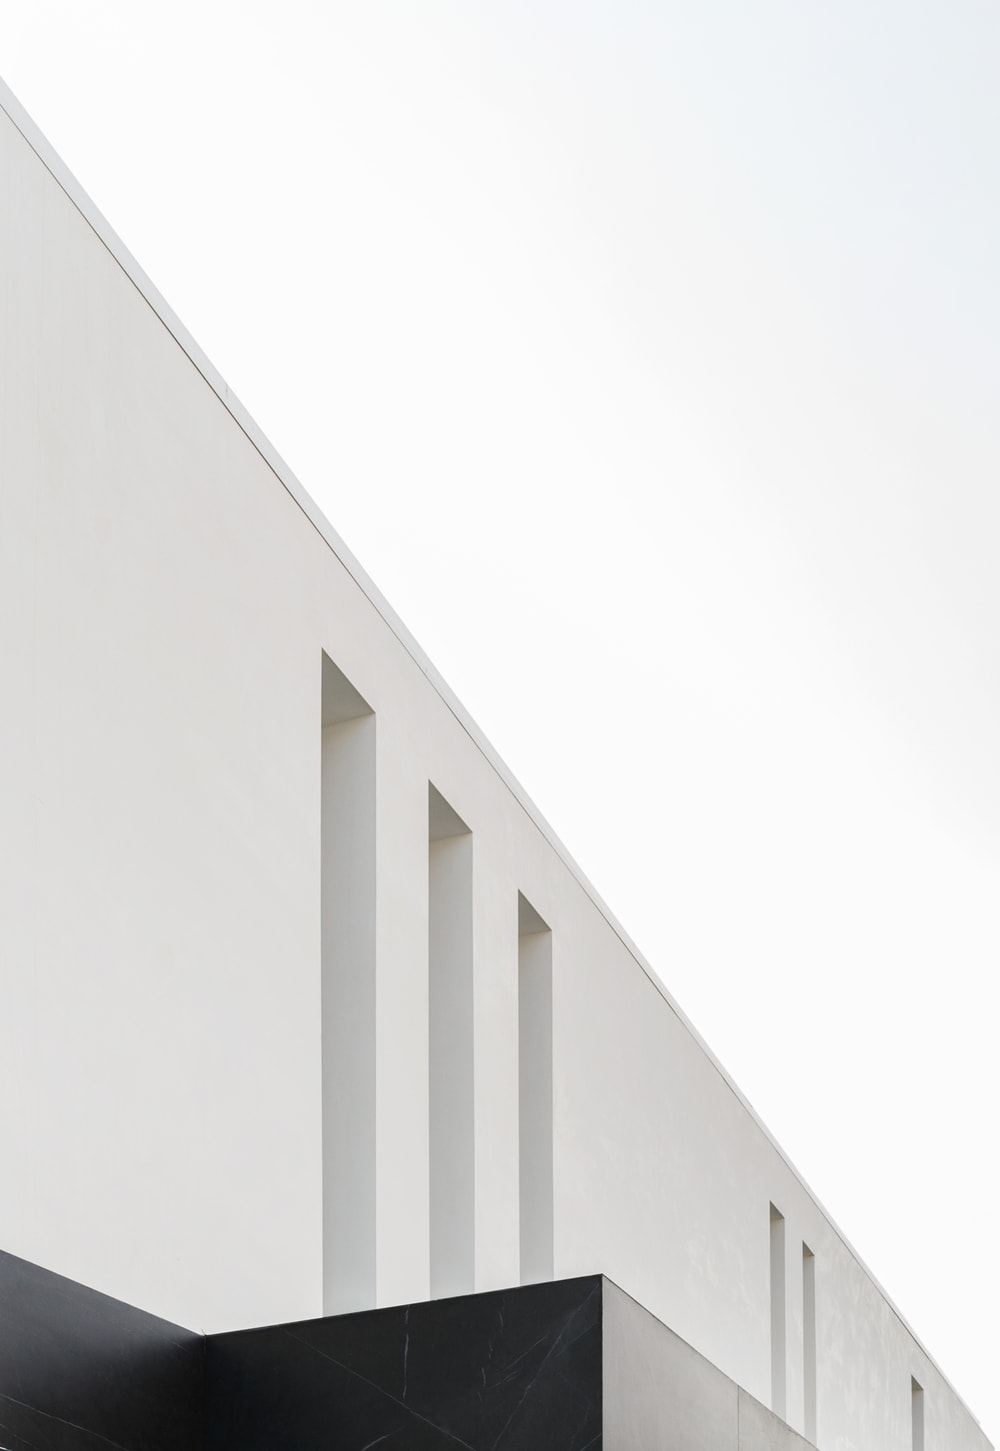 This is a close inspection of the tall and thin glass windows above the main entrance of the house that gives a unique look to the house.